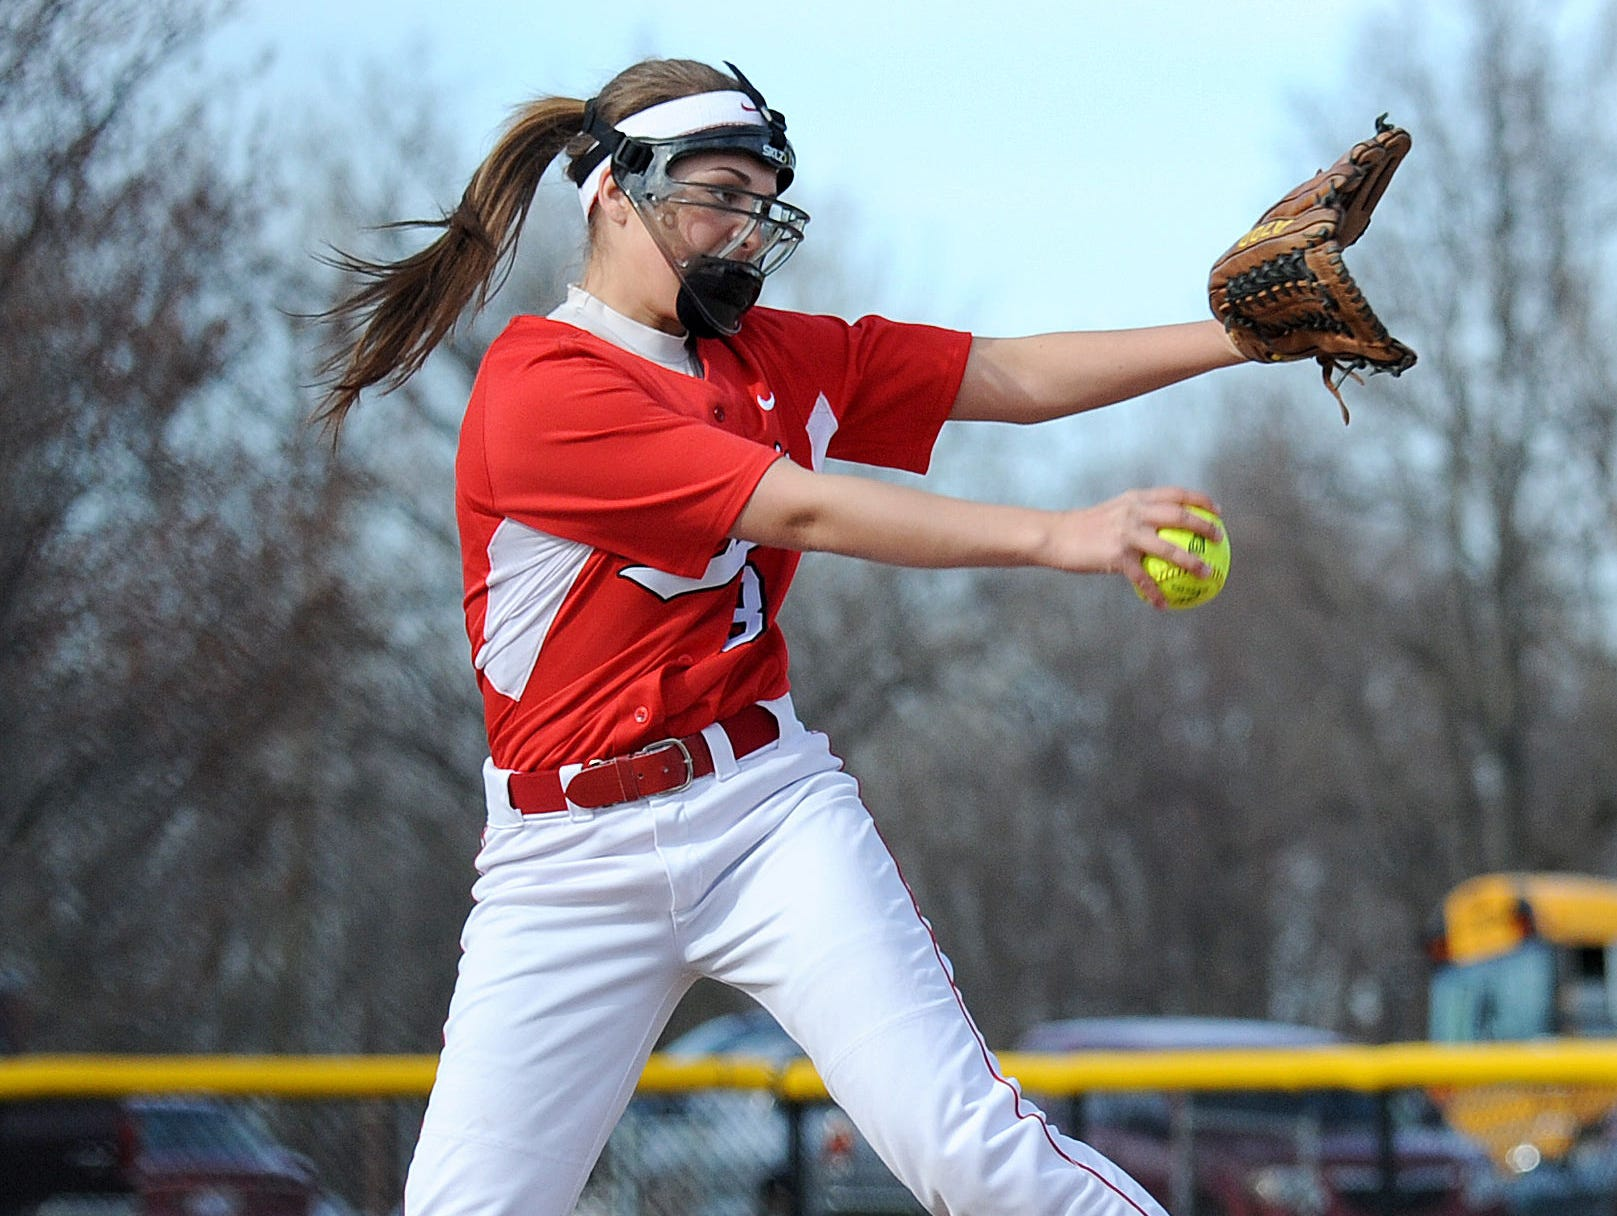 Bucyrus' Toni Zeigler pitches their game against Bucyrus Wednesday evening.